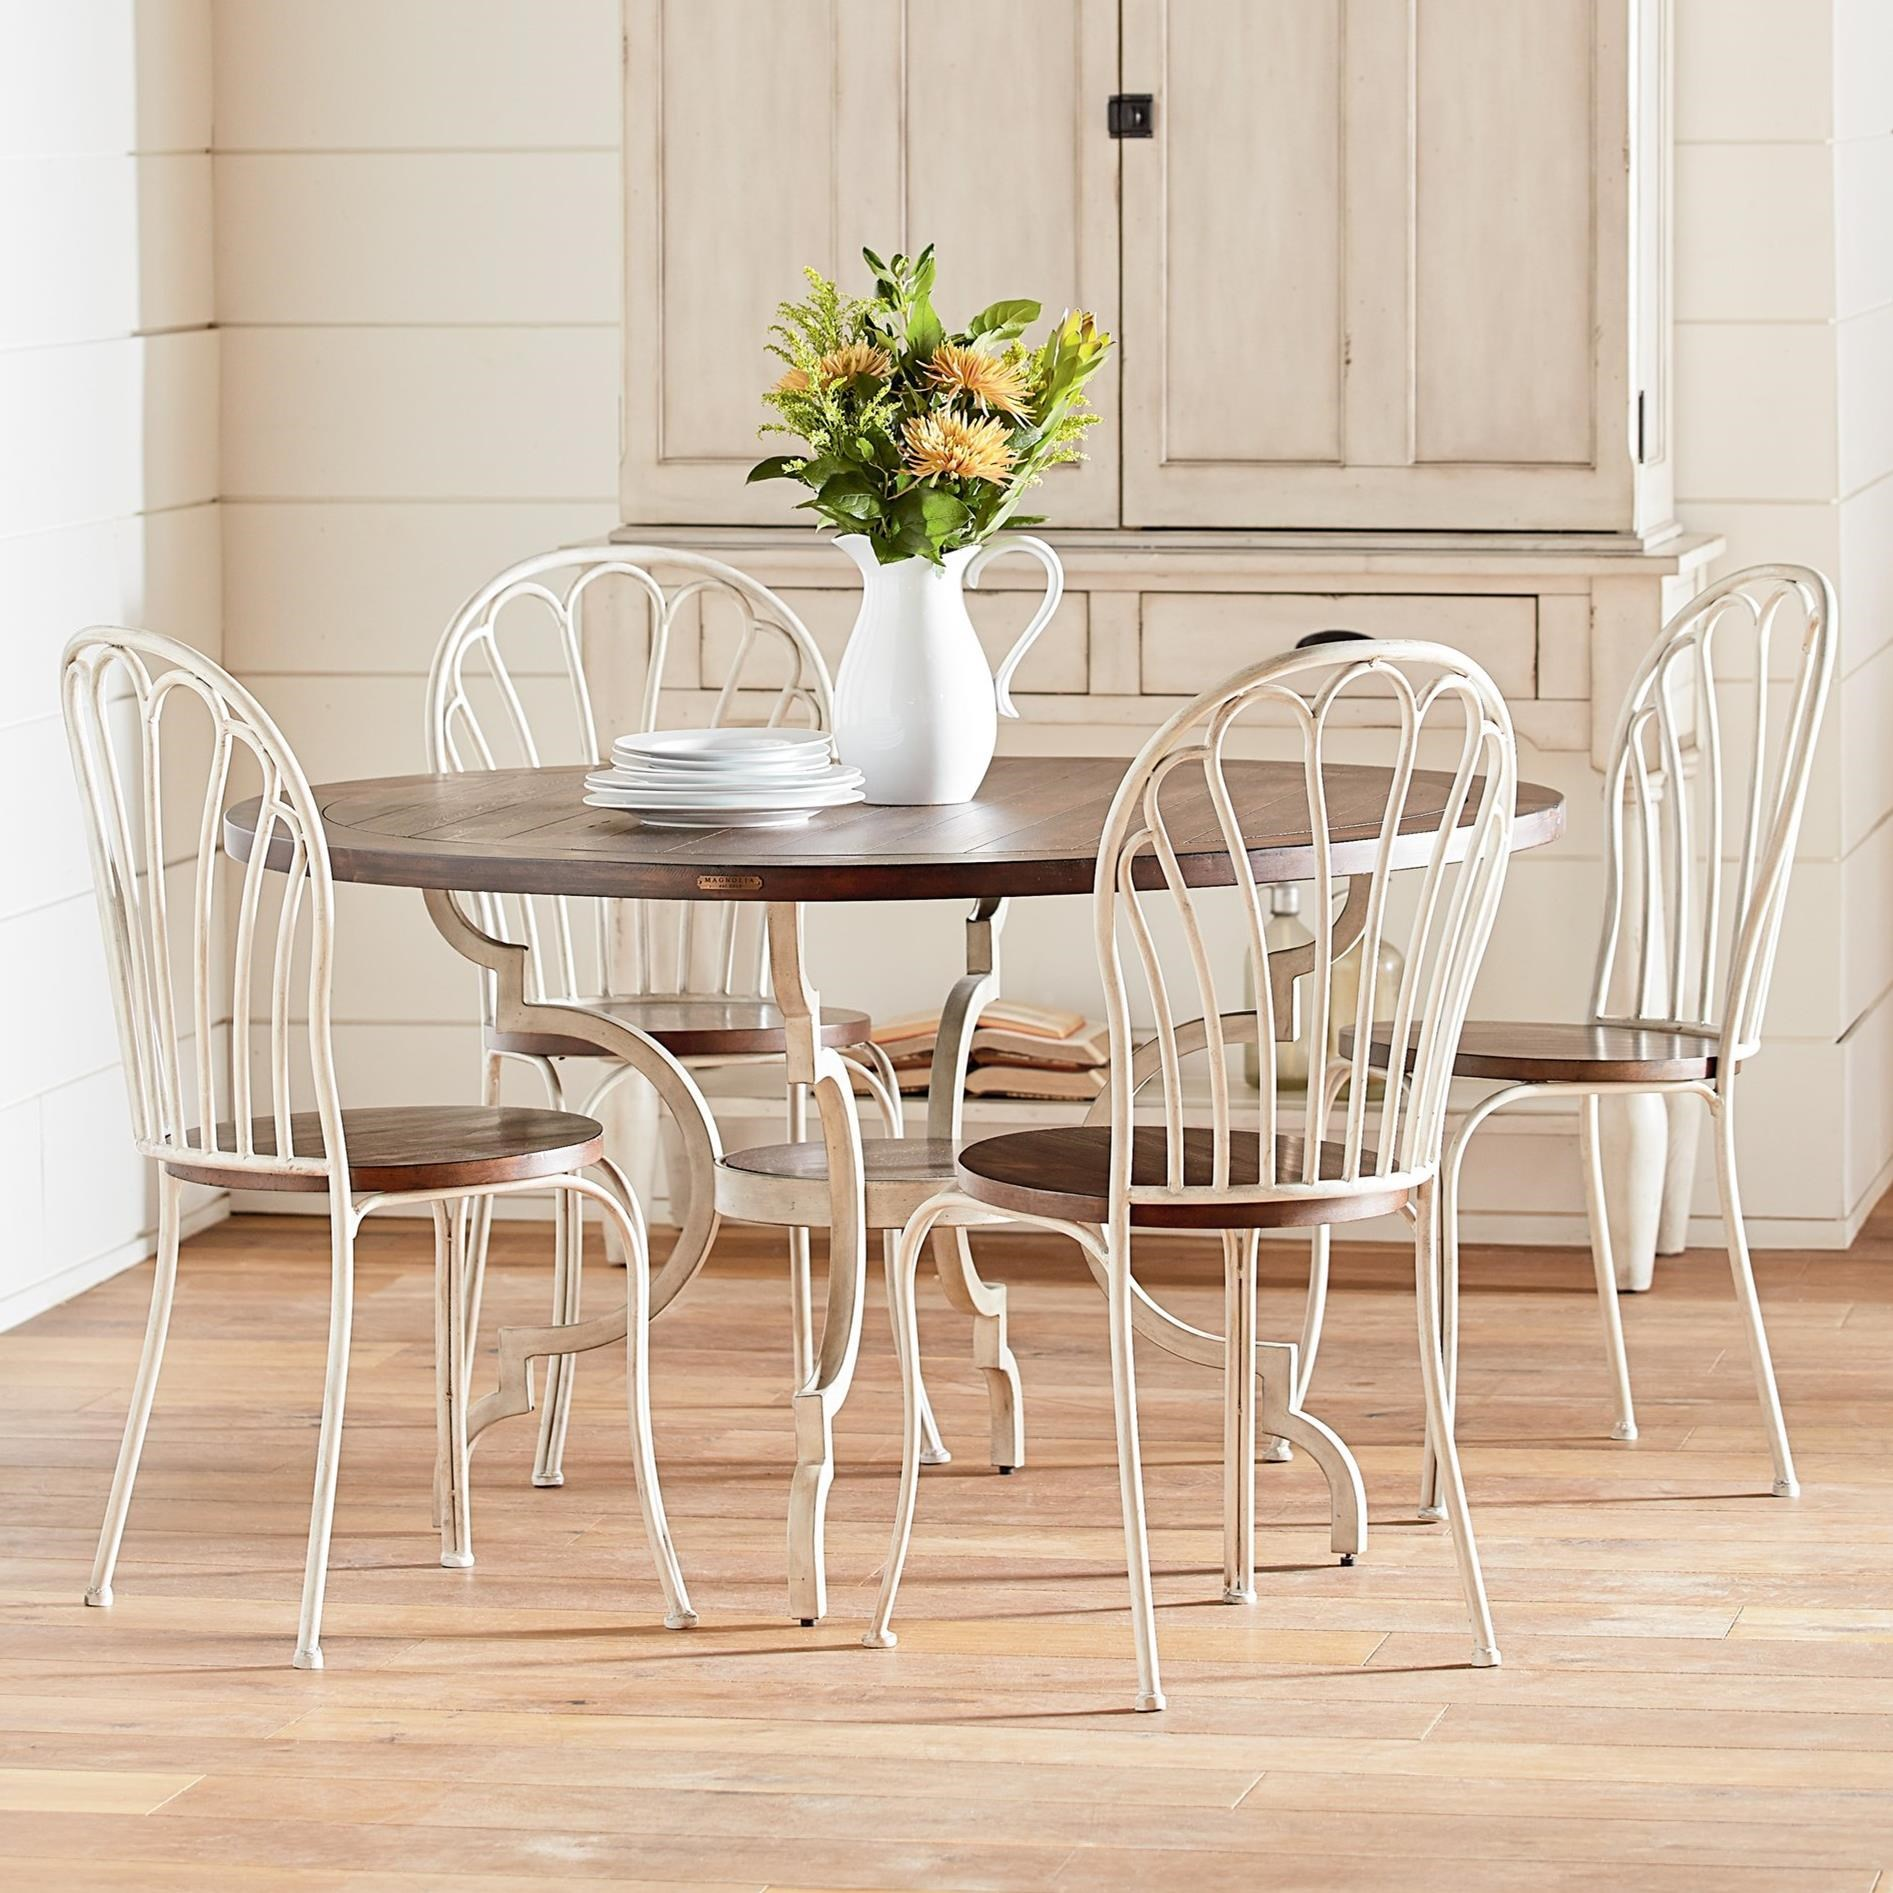 Magnolia Home By Joanna Gaines Primitive 5 Piece Round Table Chair Set